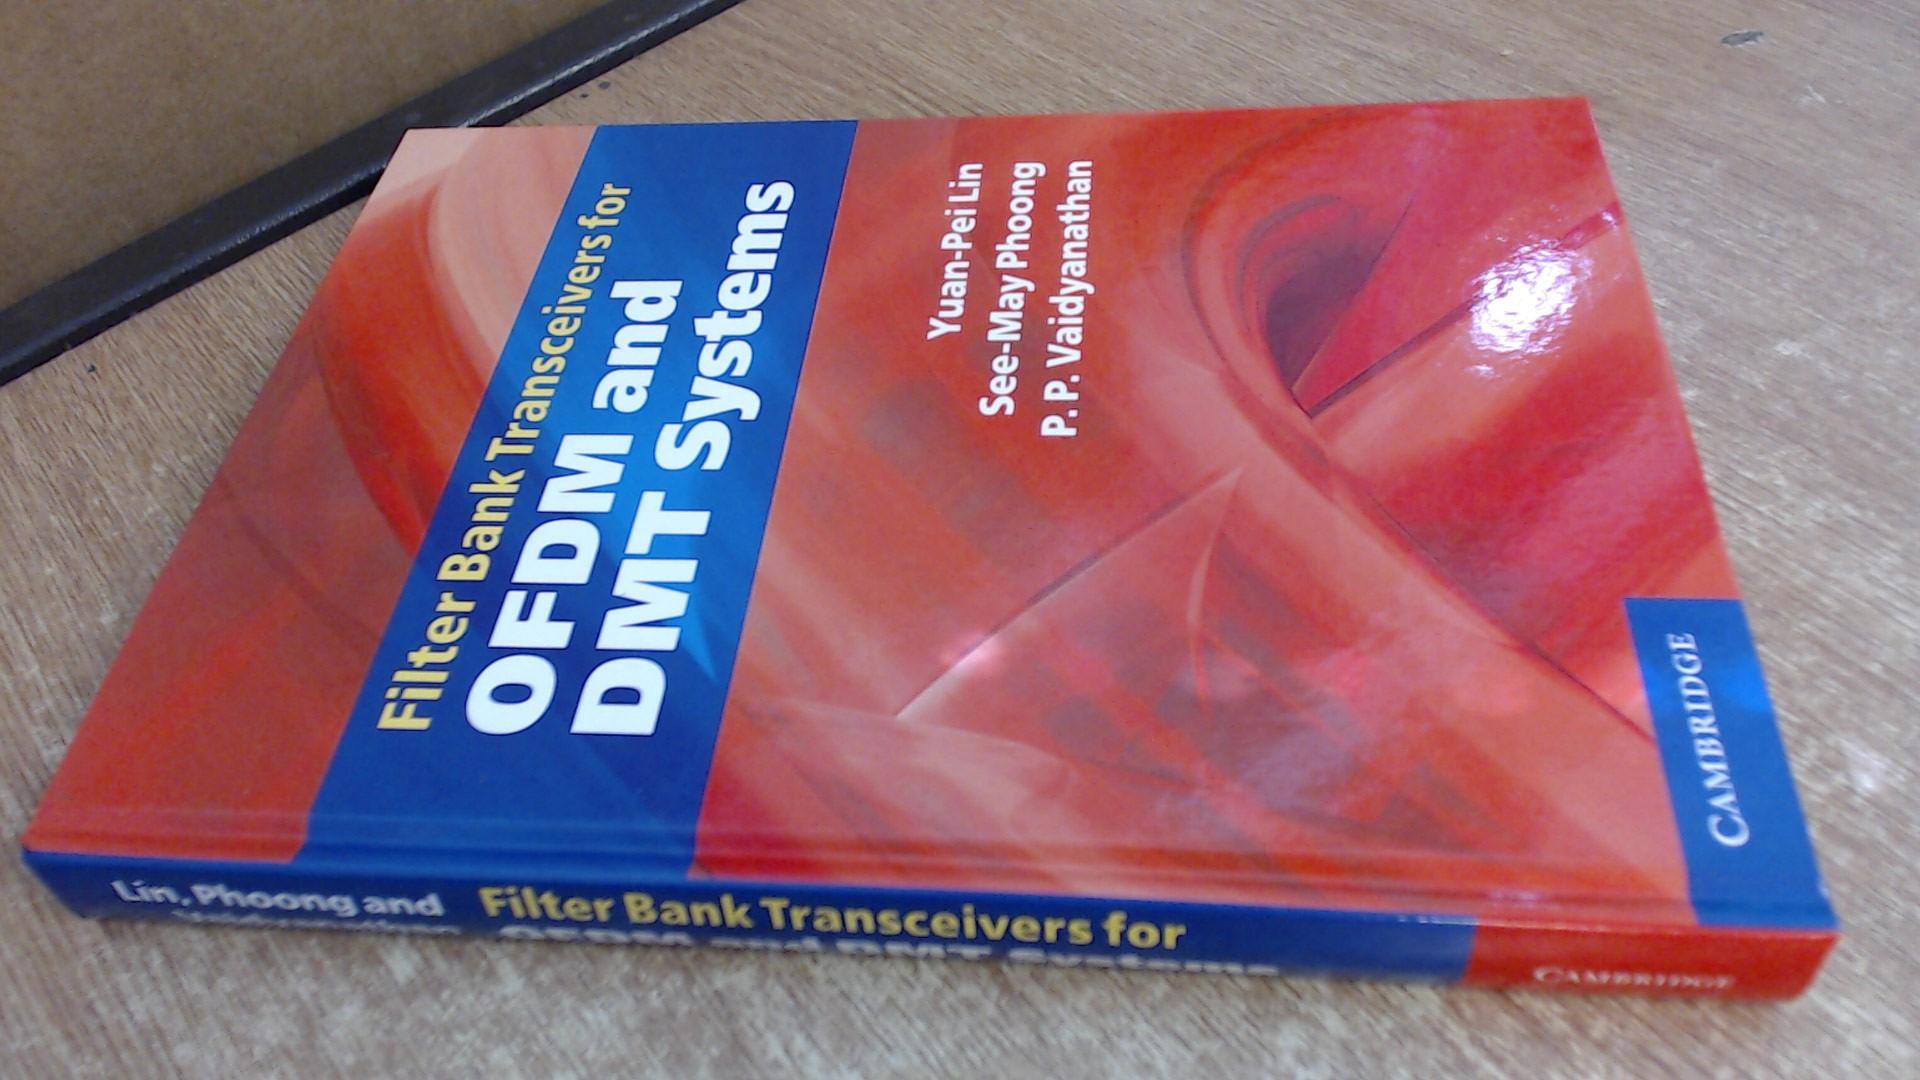 Filter Bank Transceivers For Ofdm And Dmt Systems Various Editors As New Hardcover VG unused book without dust jacket. Boards are clean. Book has clean and bright contents